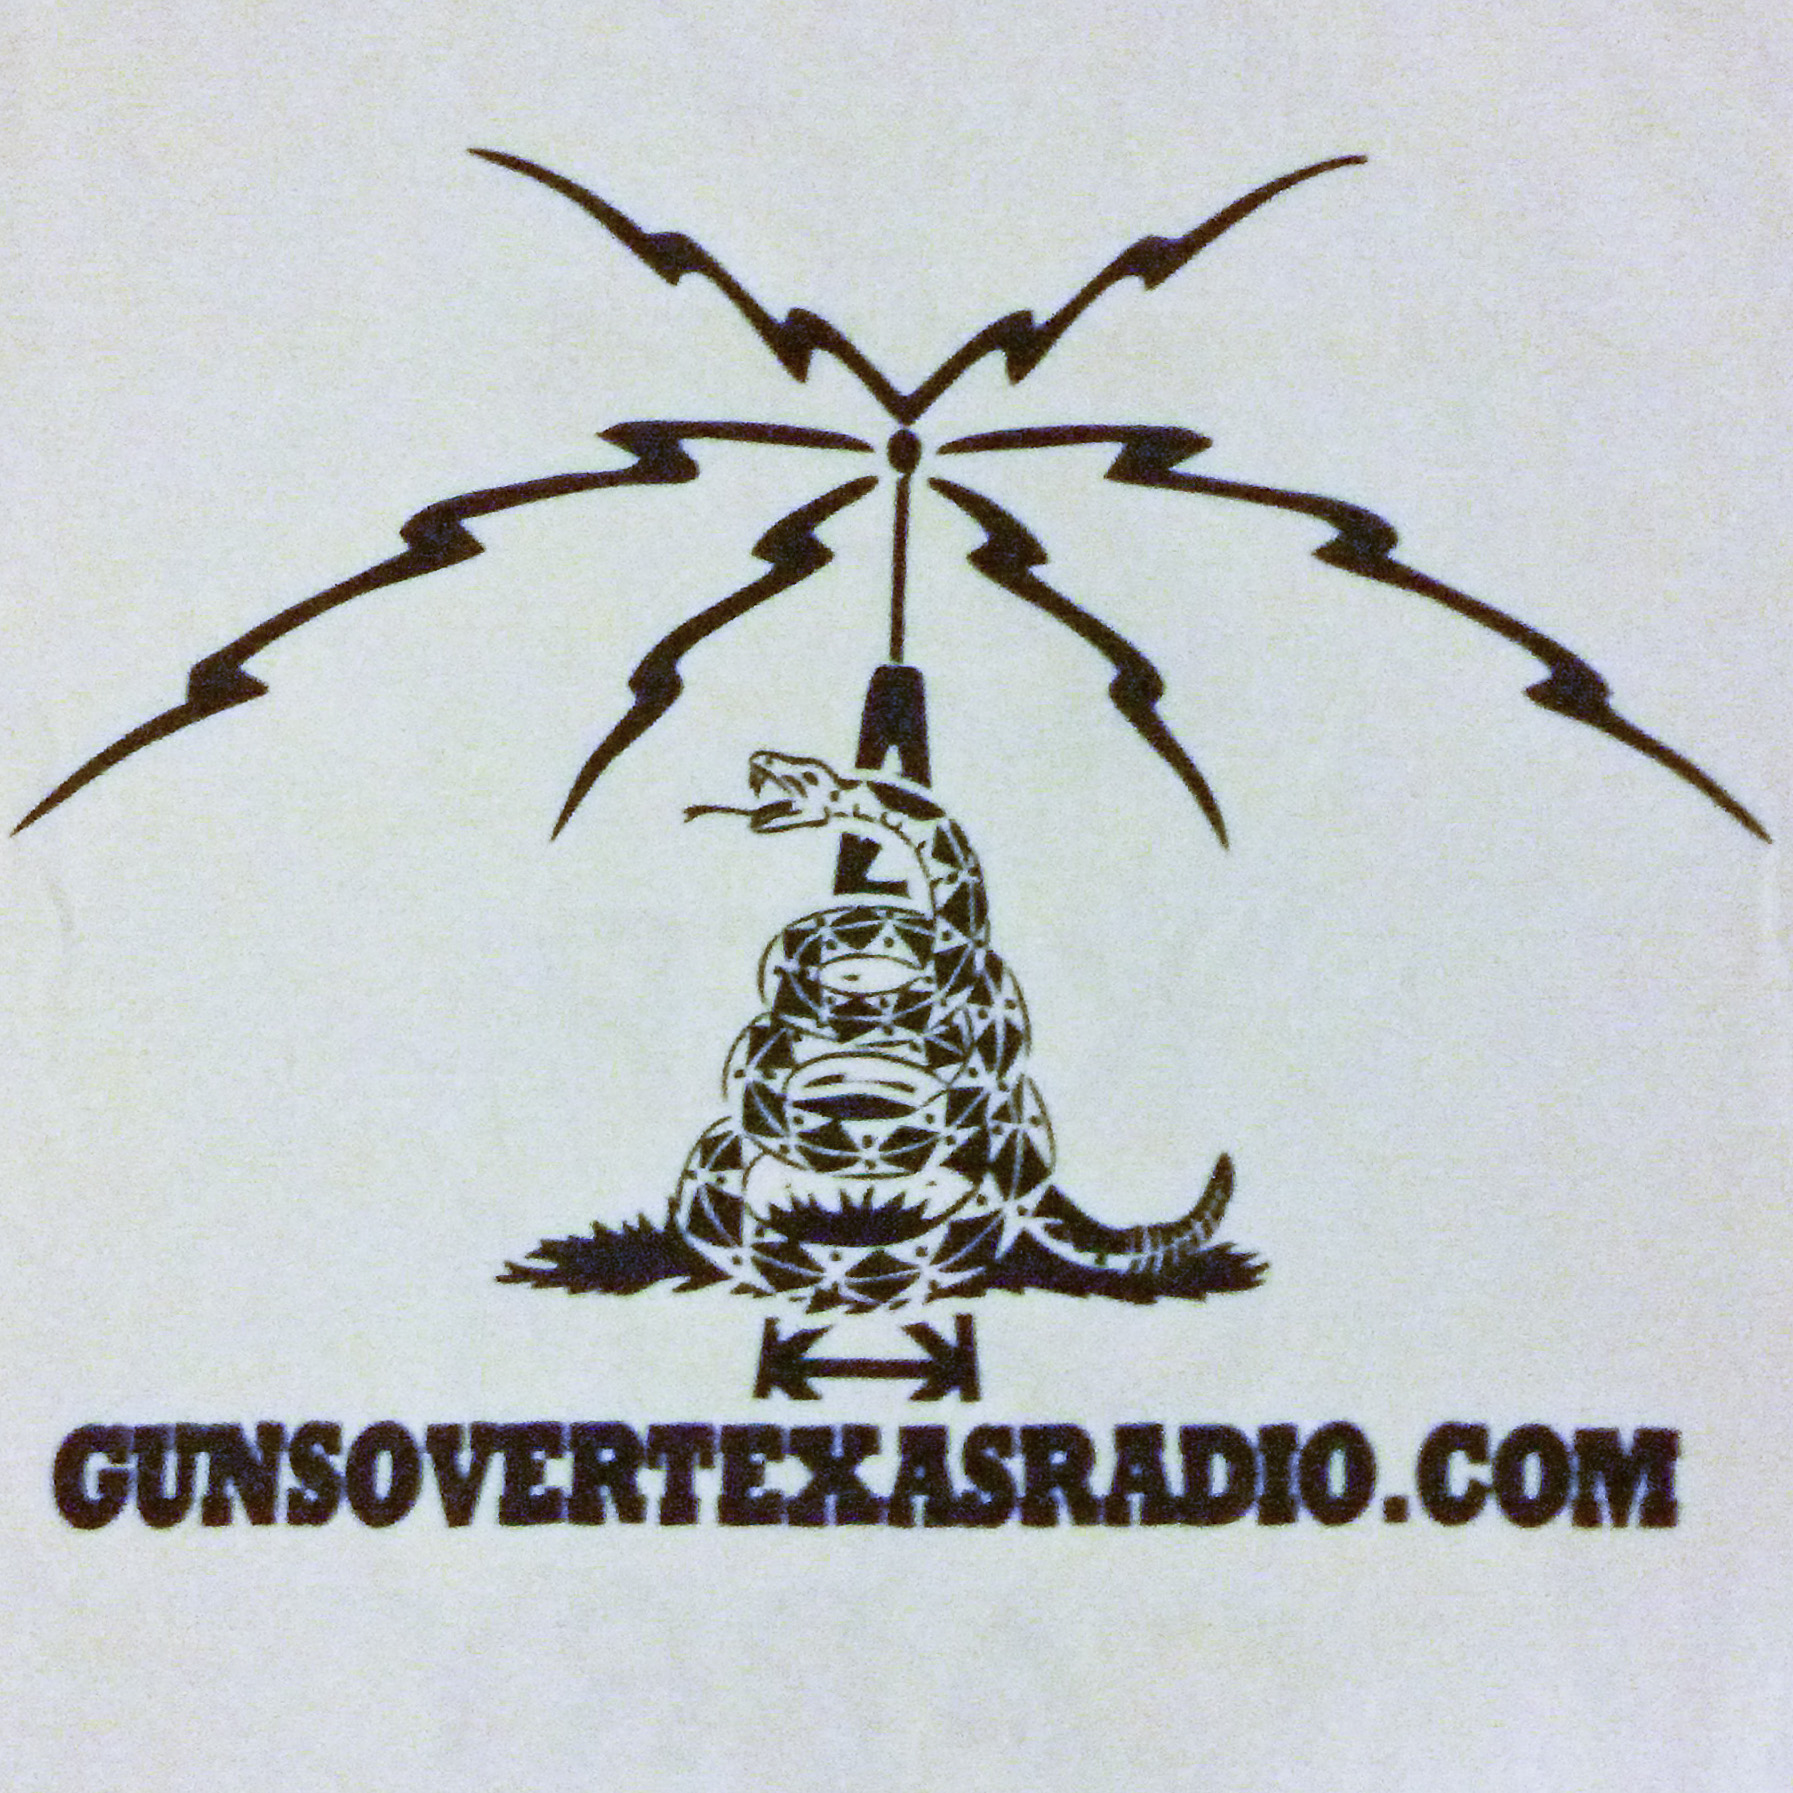 Guns Over Texas Radio